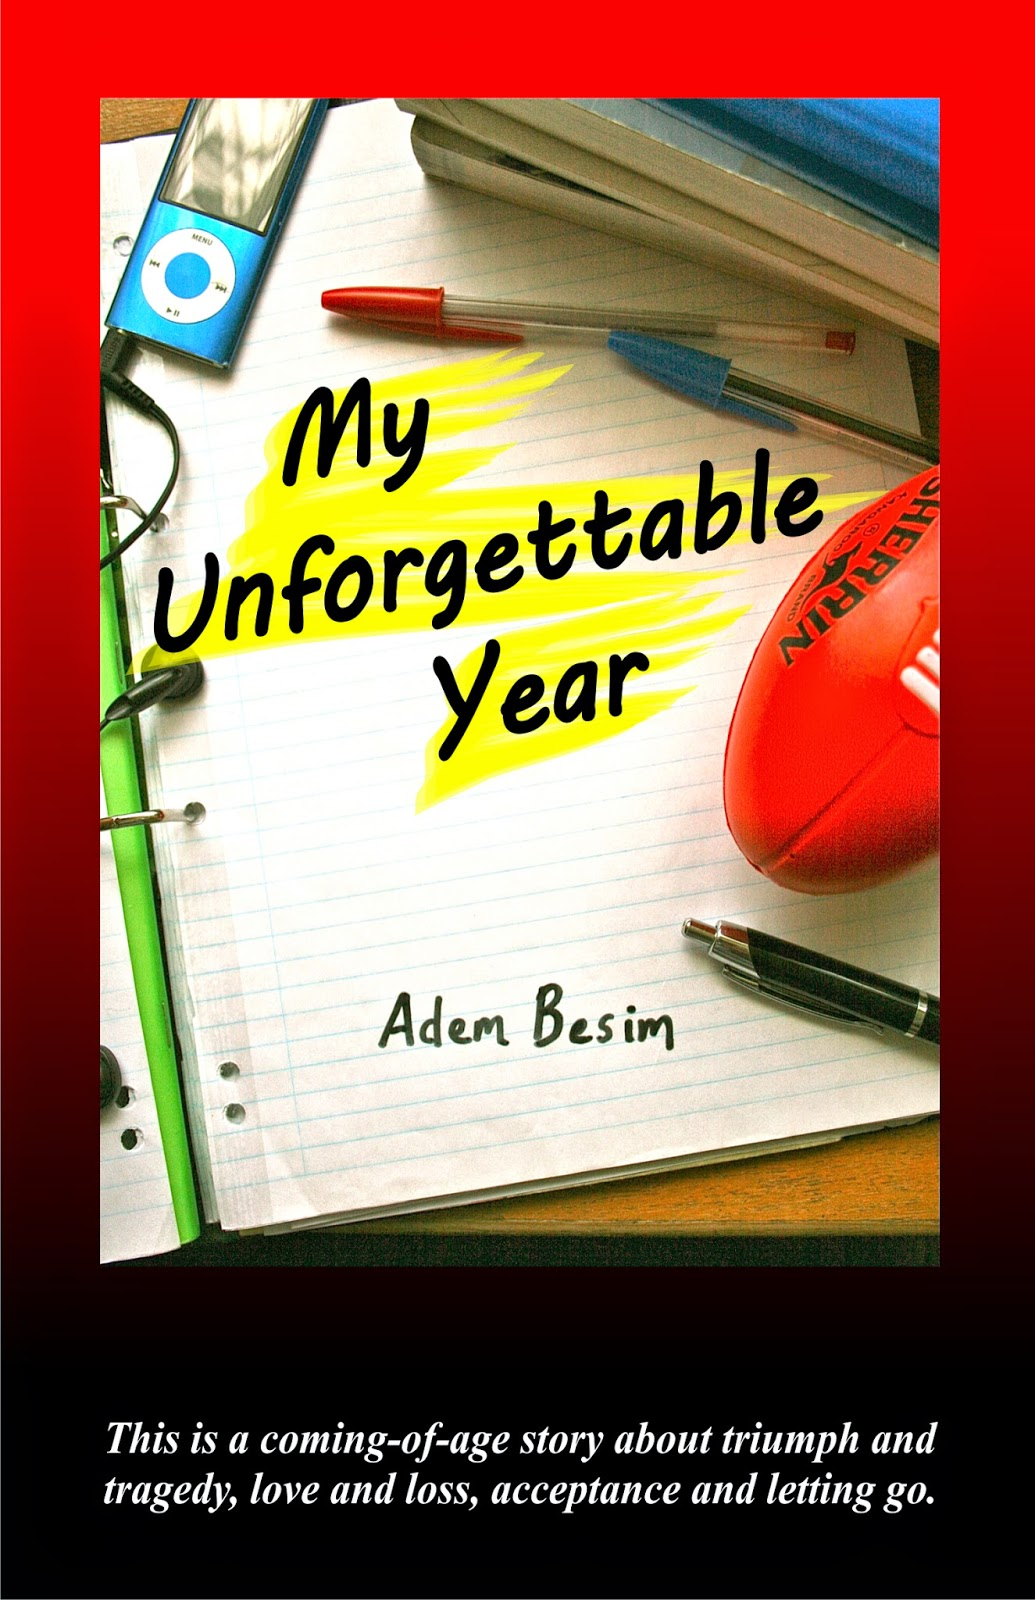 My unforgettable story